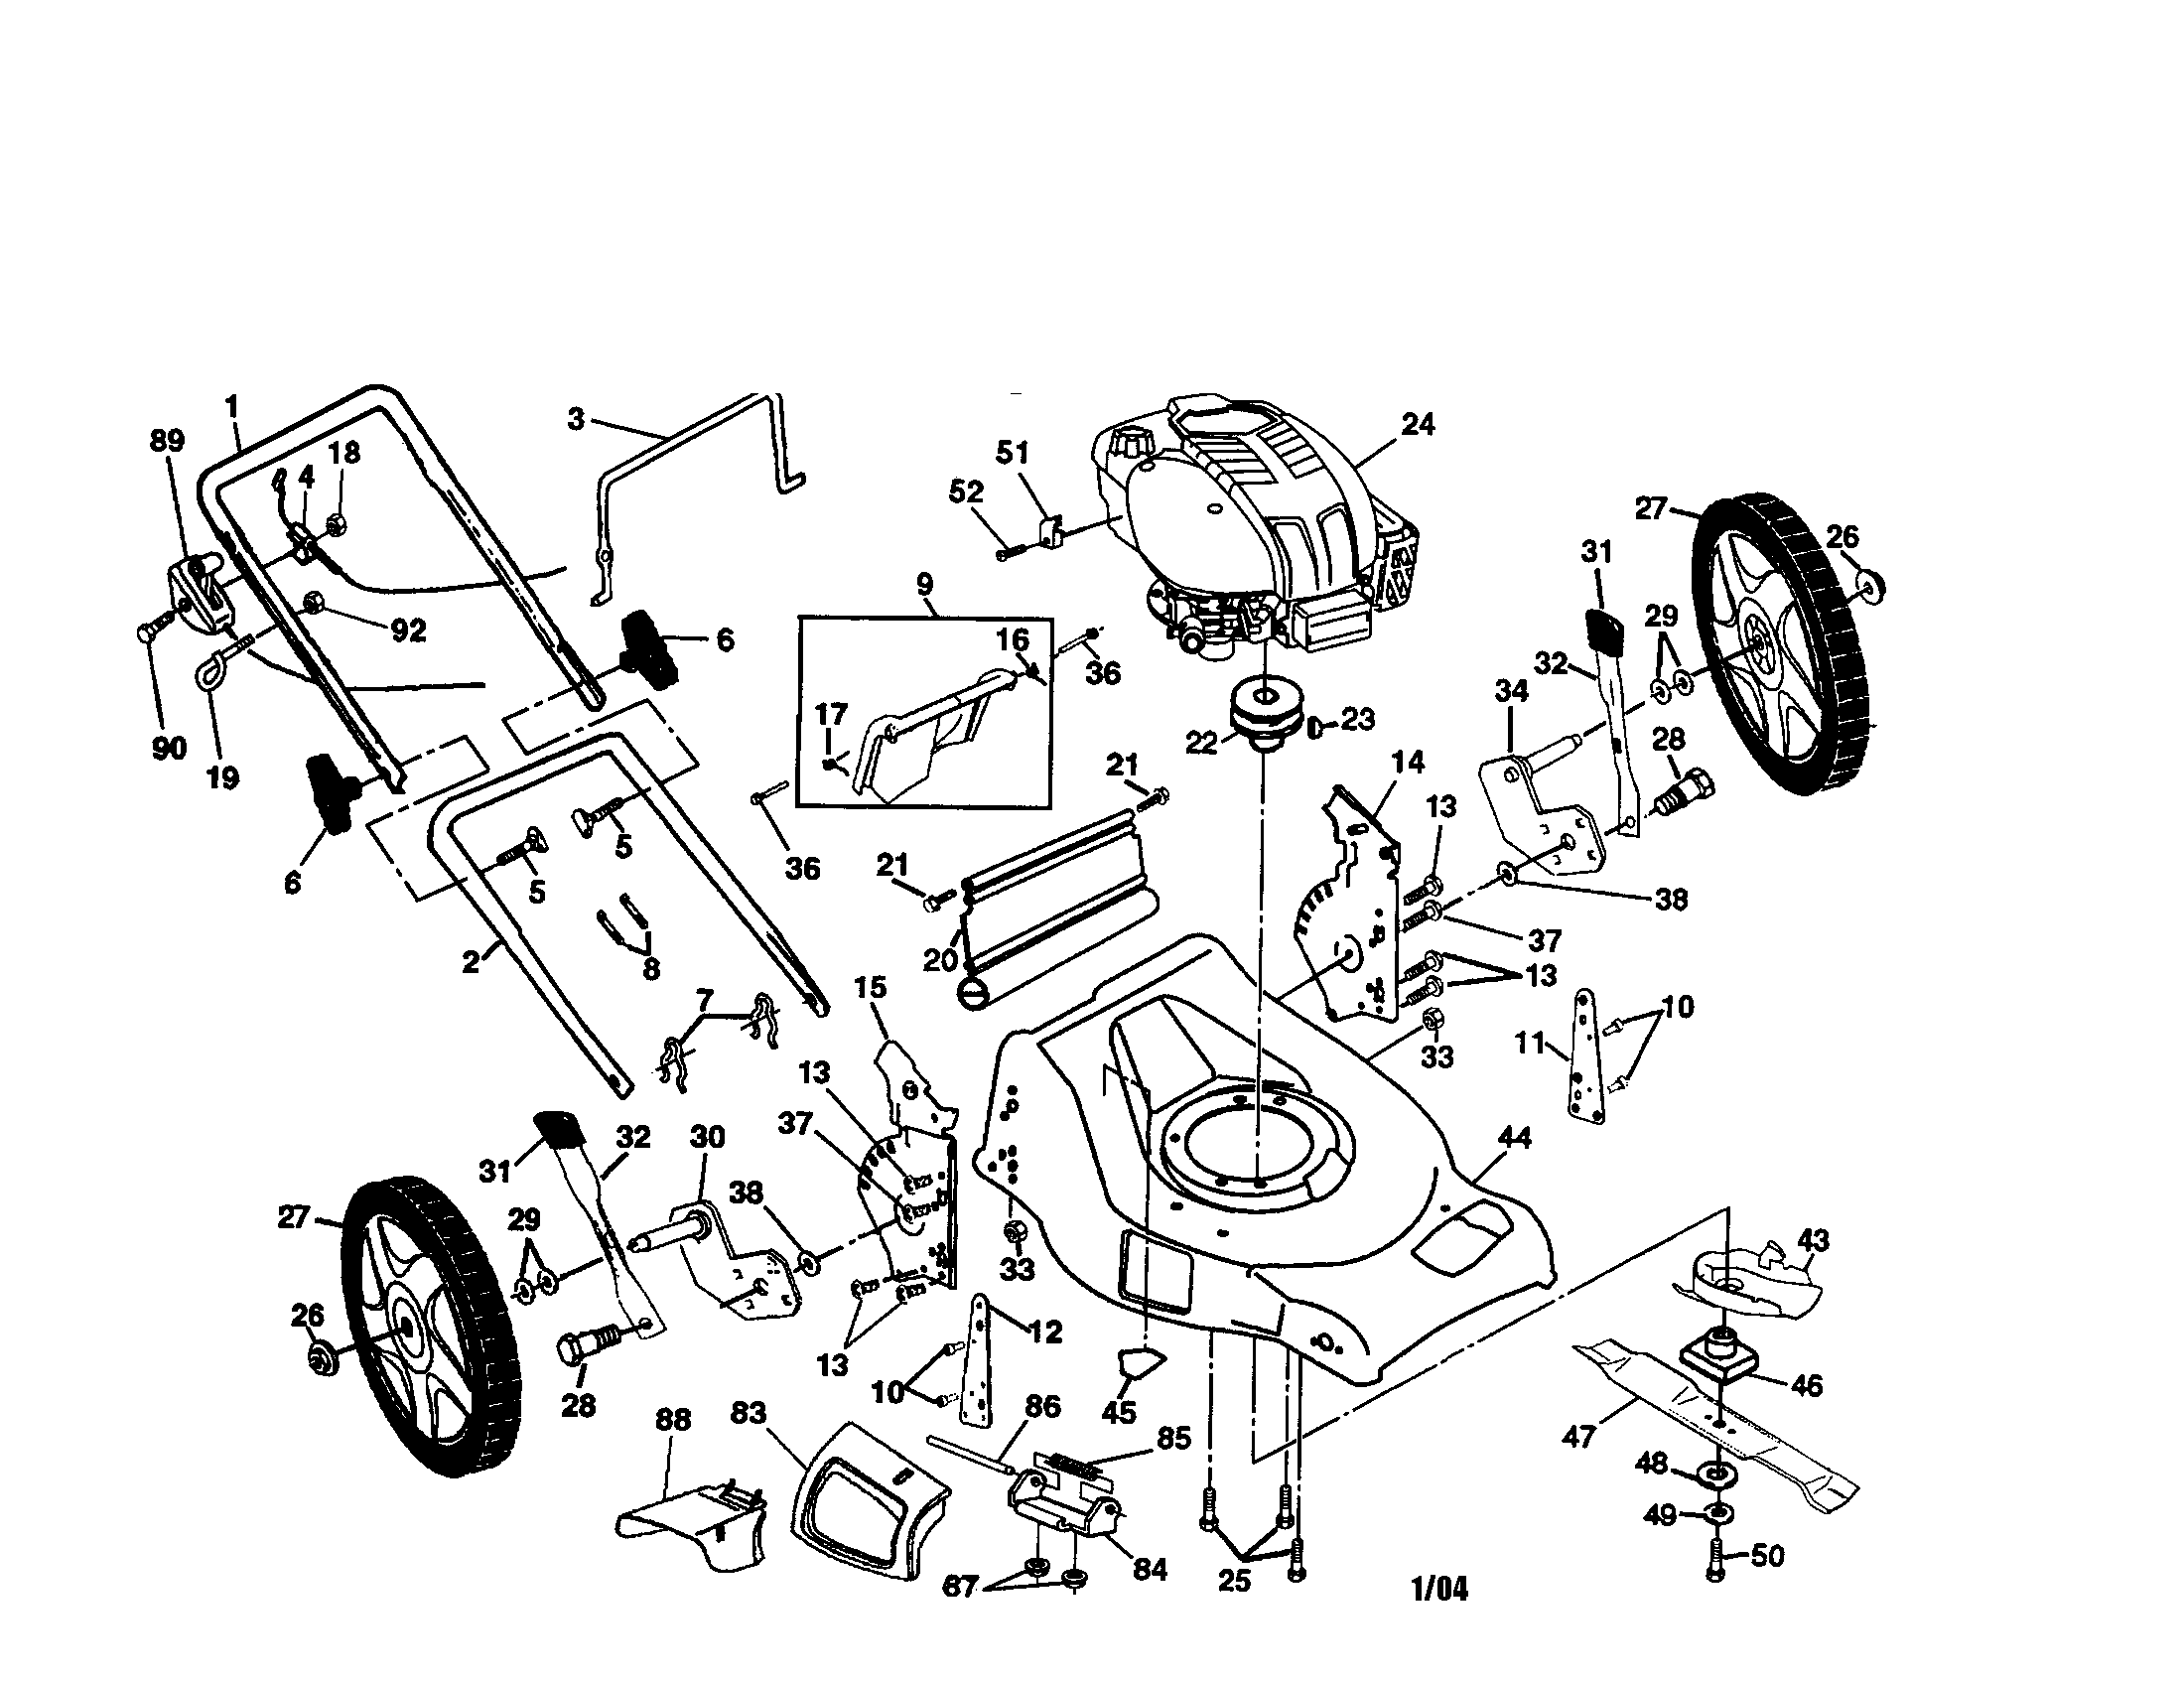 Mower Parts Diagram Poulan Riding Mower Parts Diagram Poulan Pro